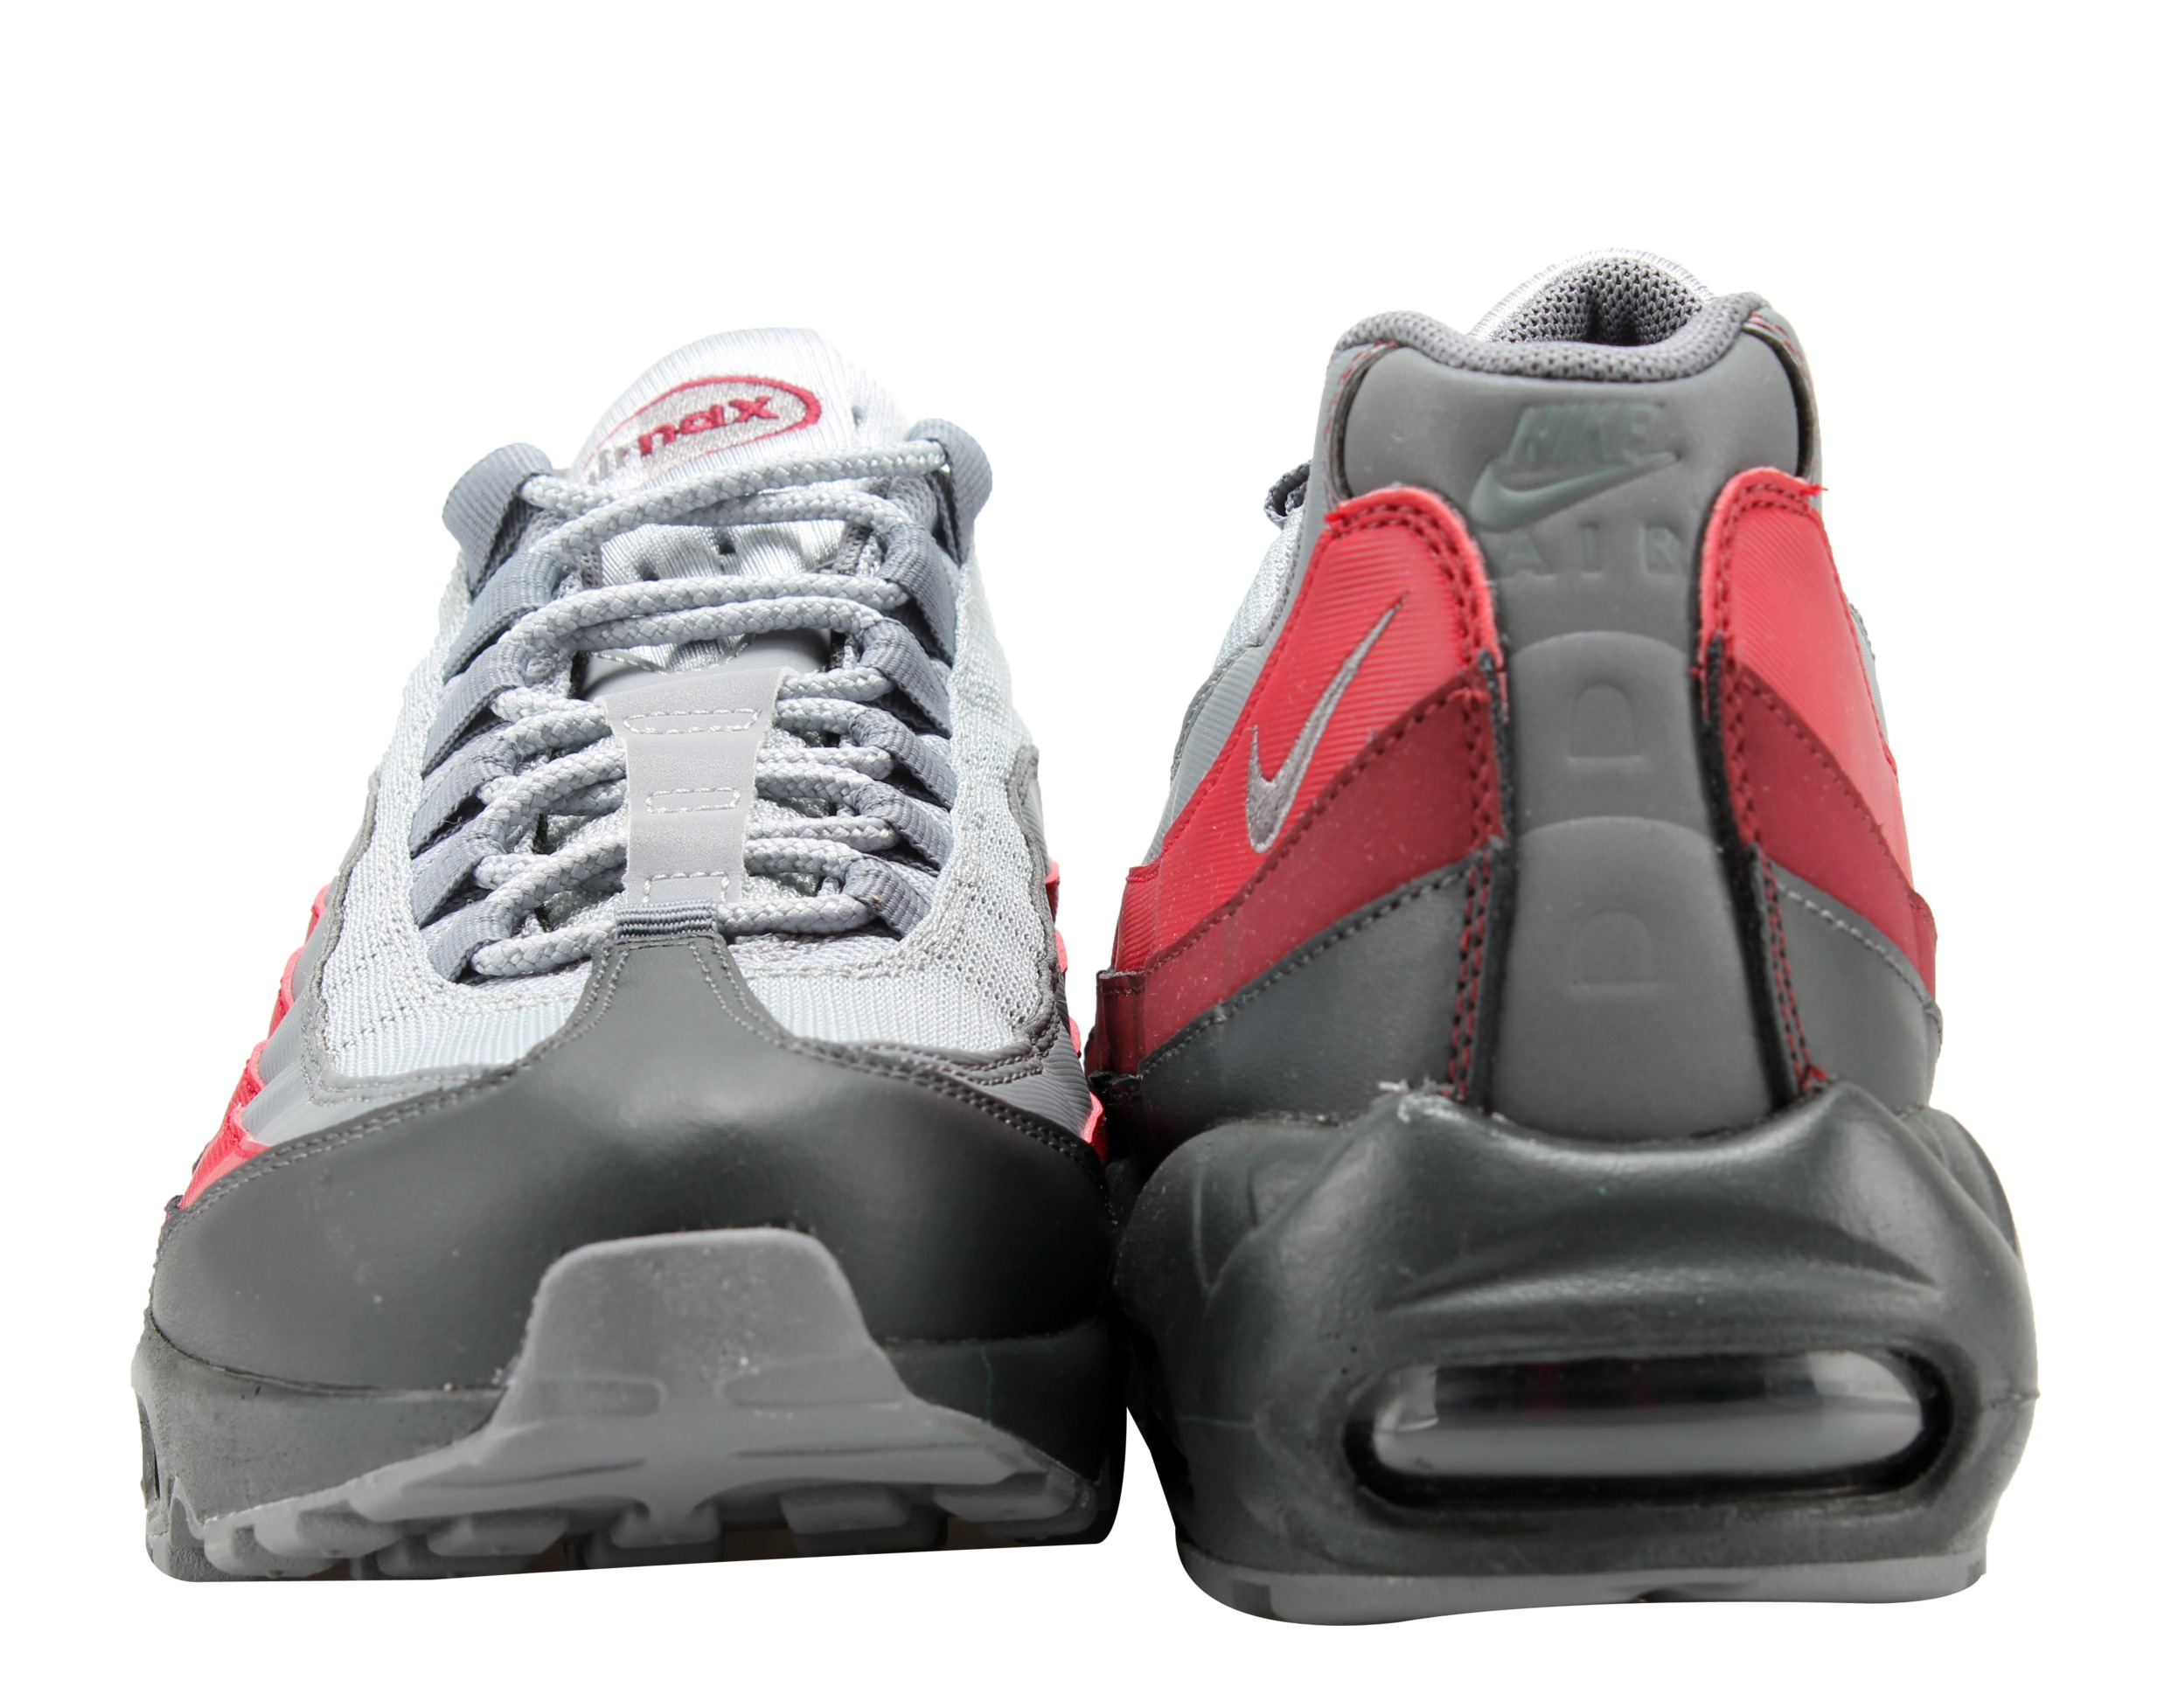 26ad5c79cdd4b Nike - Nike Air Max 95 Essential Anthracite Grey-Red Men s Running Shoes  749766-025 - Walmart.com